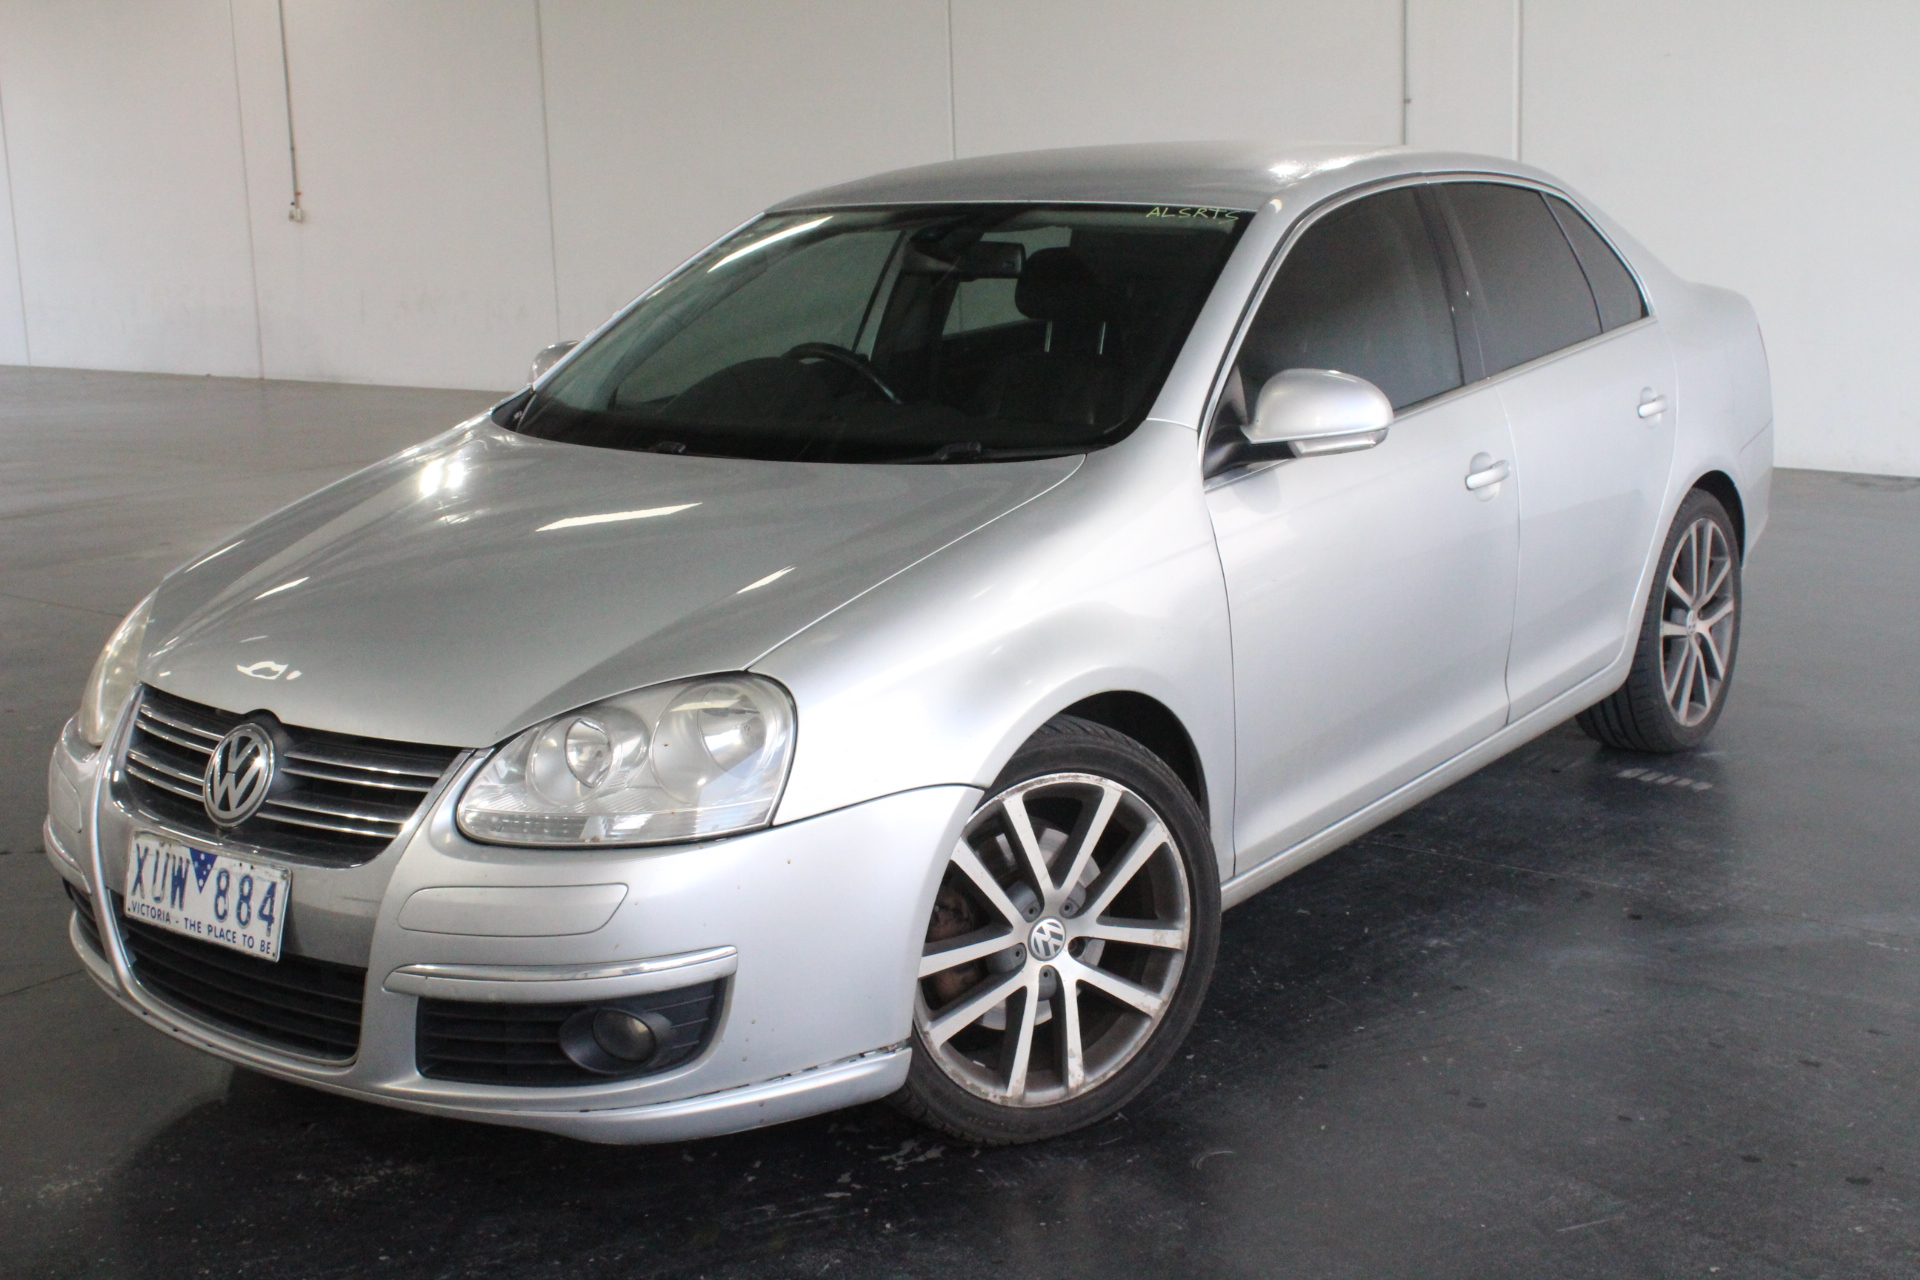 2006 Volkswagen Jetta 2.0 Turbo FSI 1KM Automatic Sedan